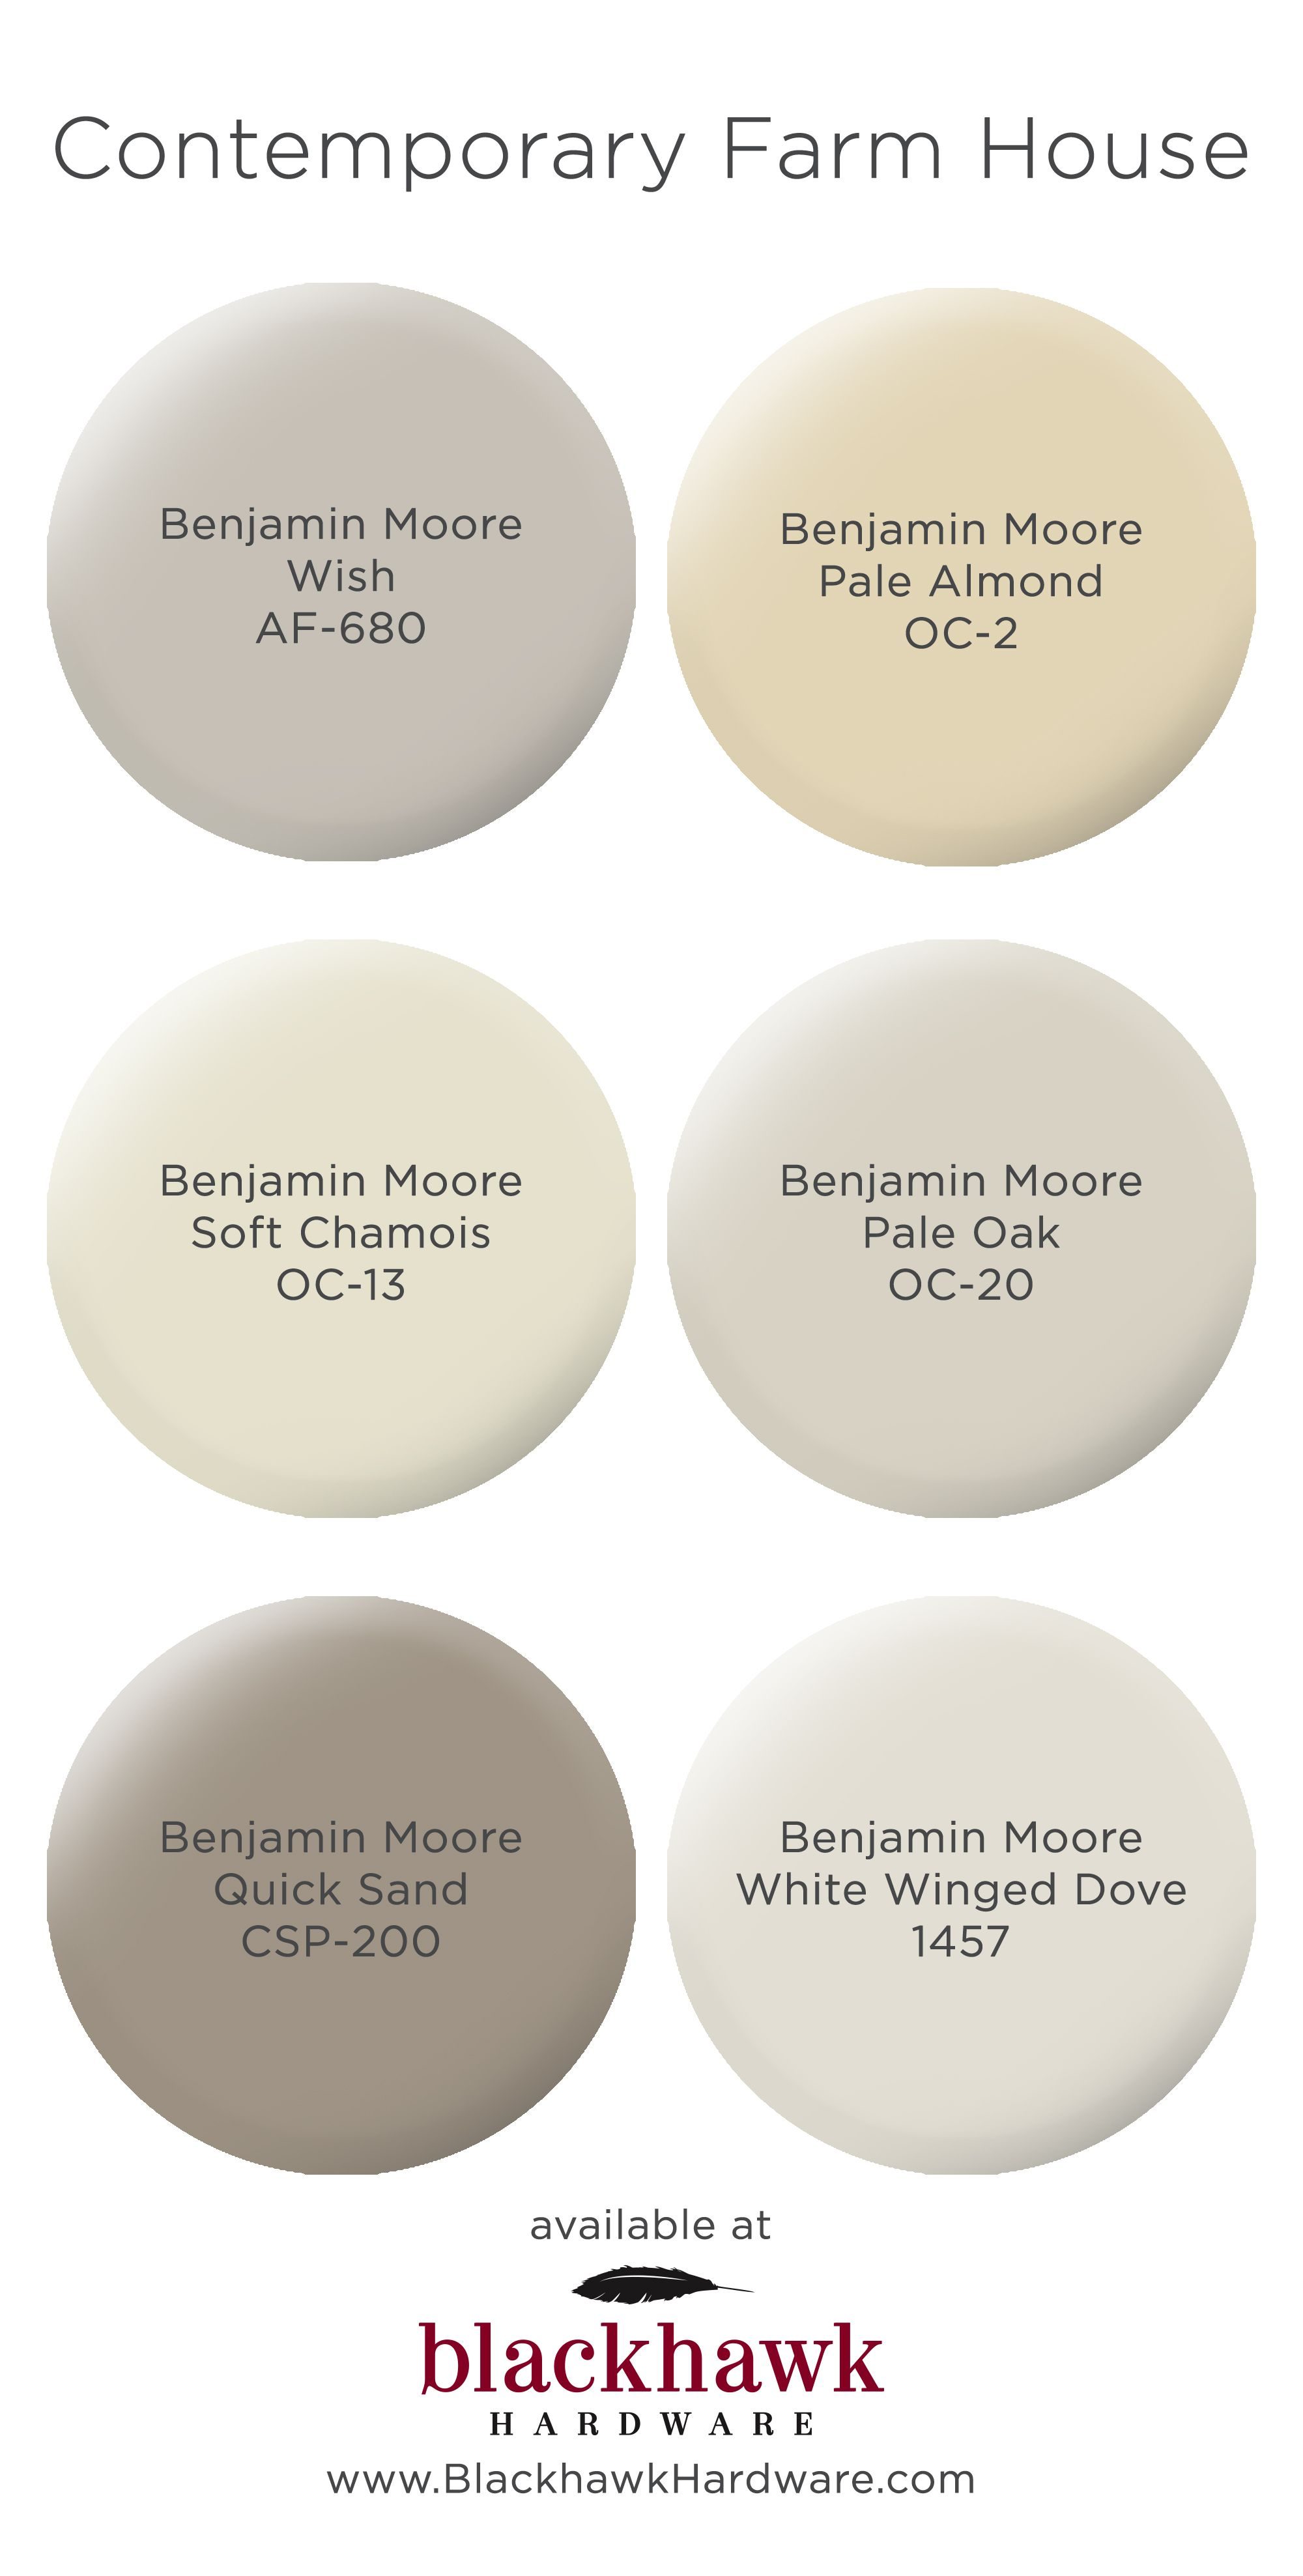 Paint Colors For Modern Farm House Interior Design Farmhouse